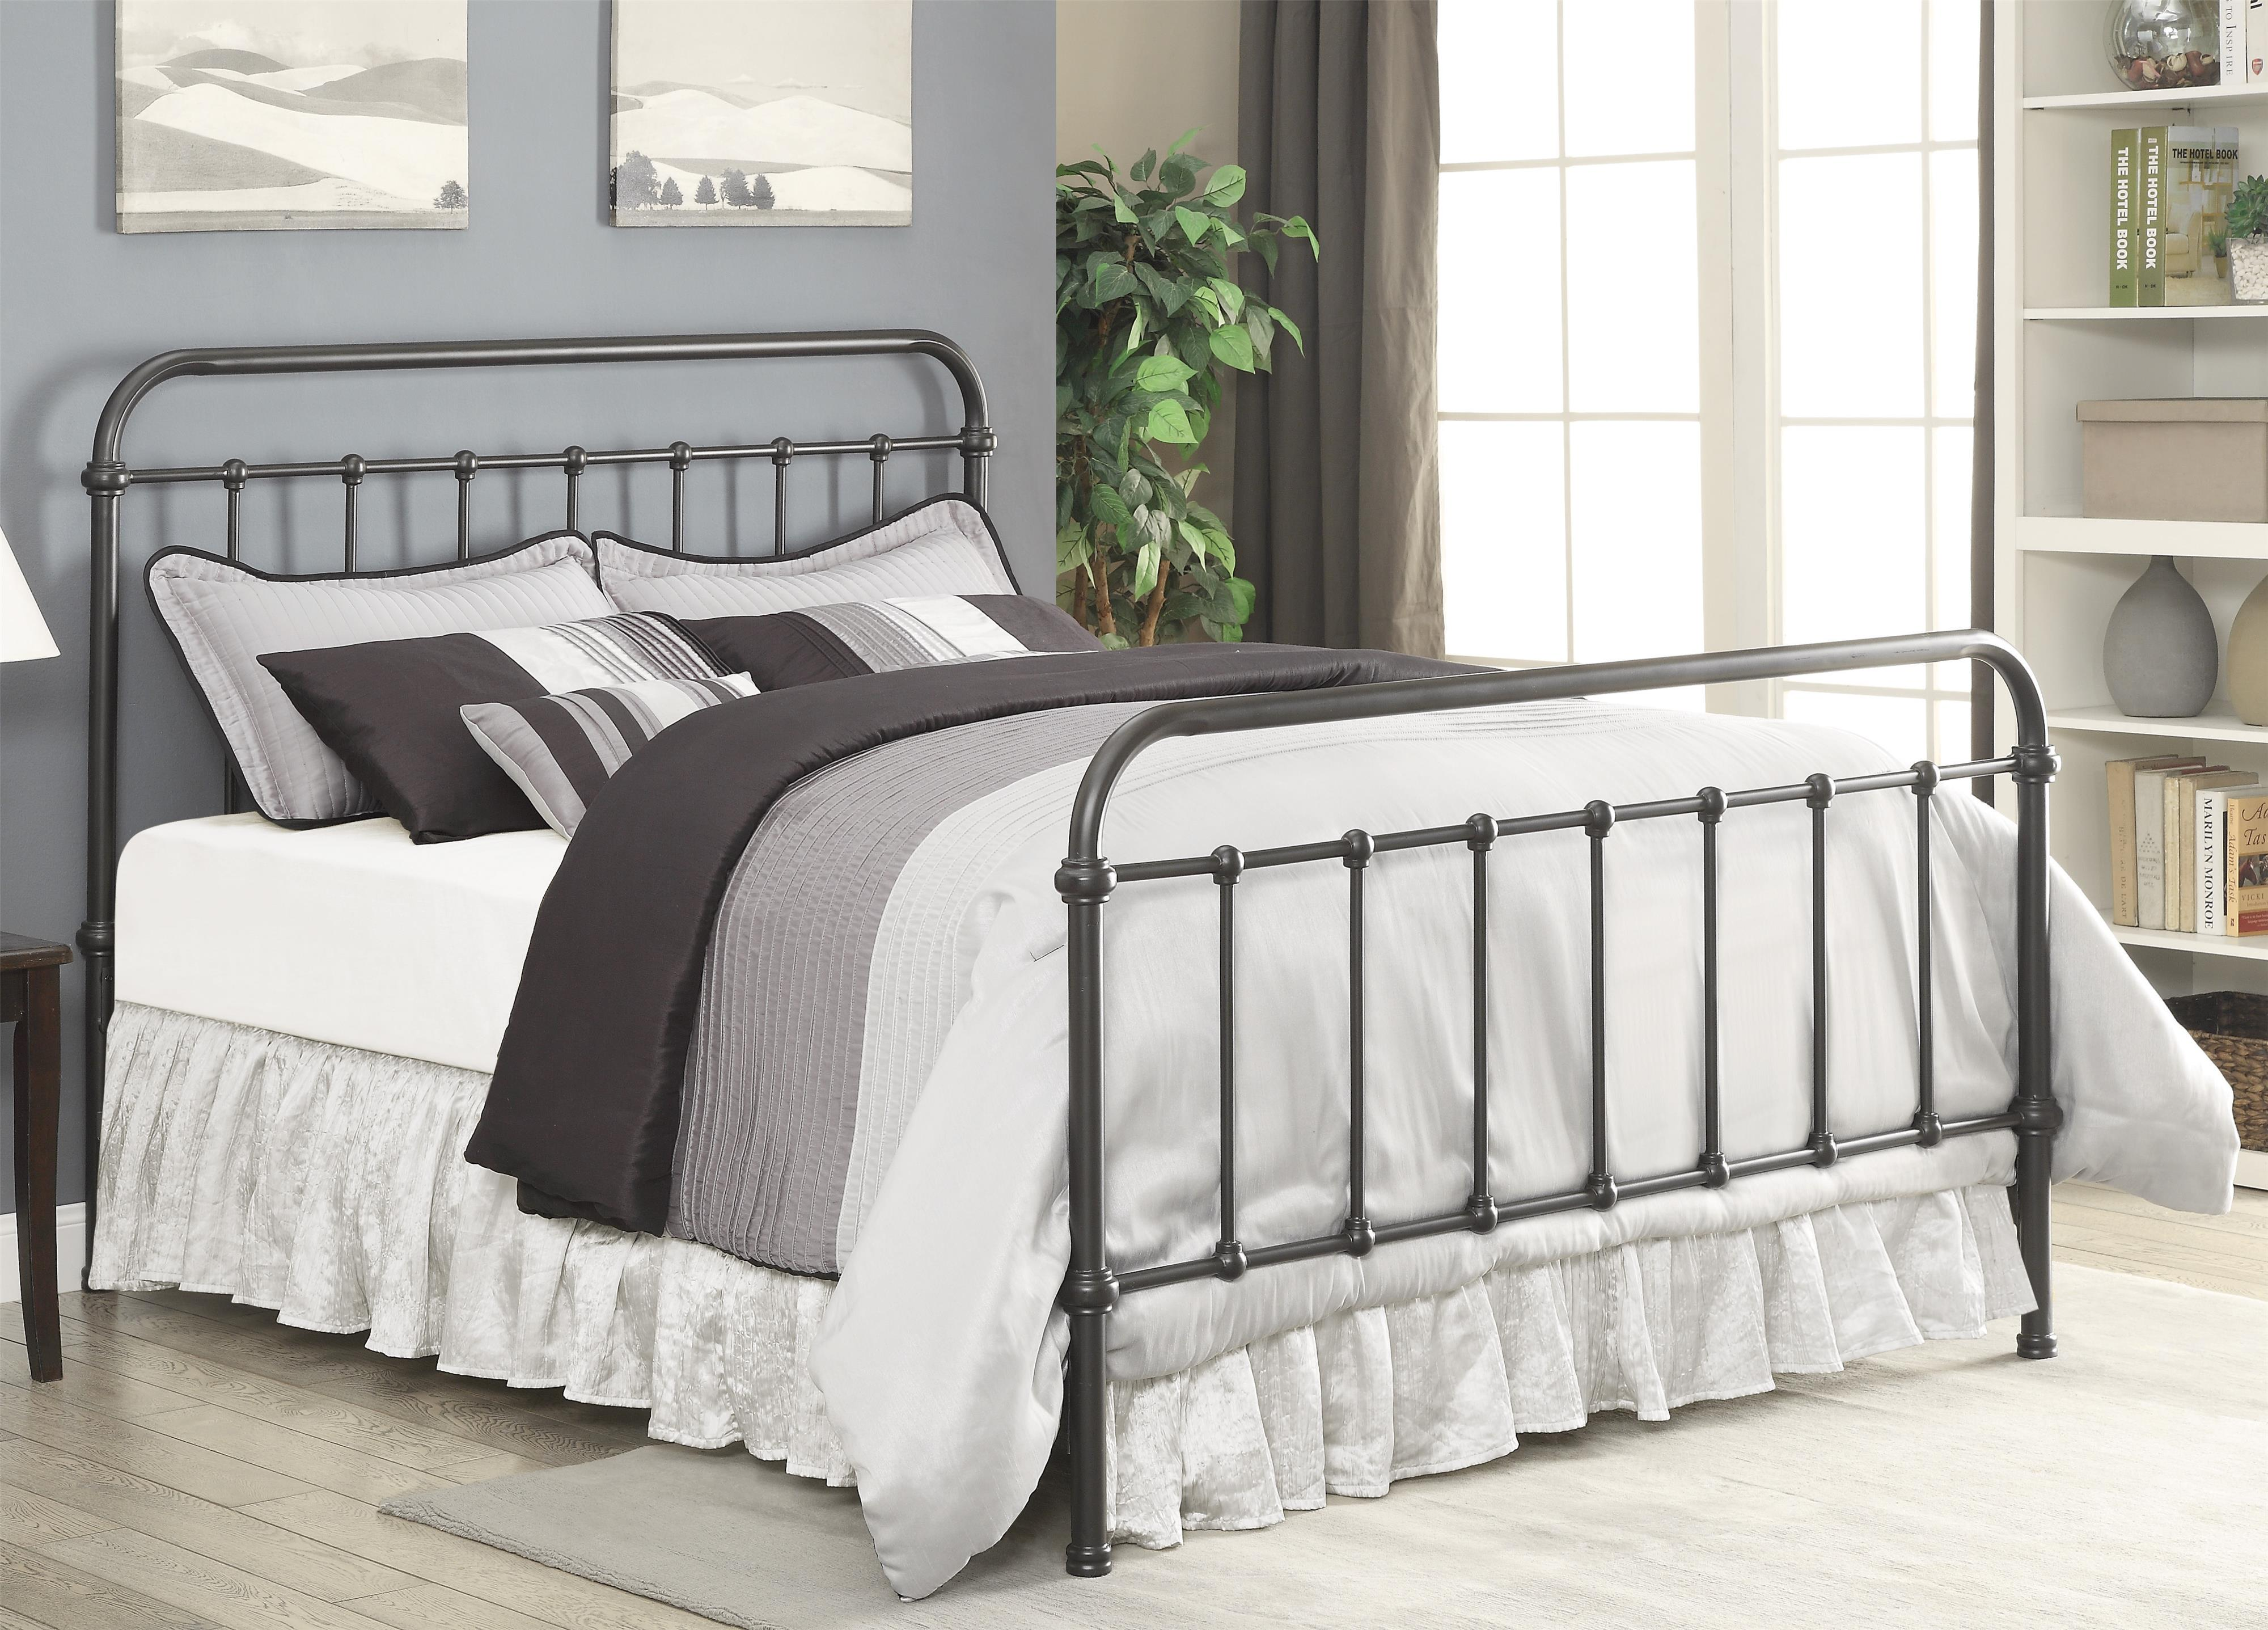 Livingston Queen Bed by Coaster at Northeast Factory Direct